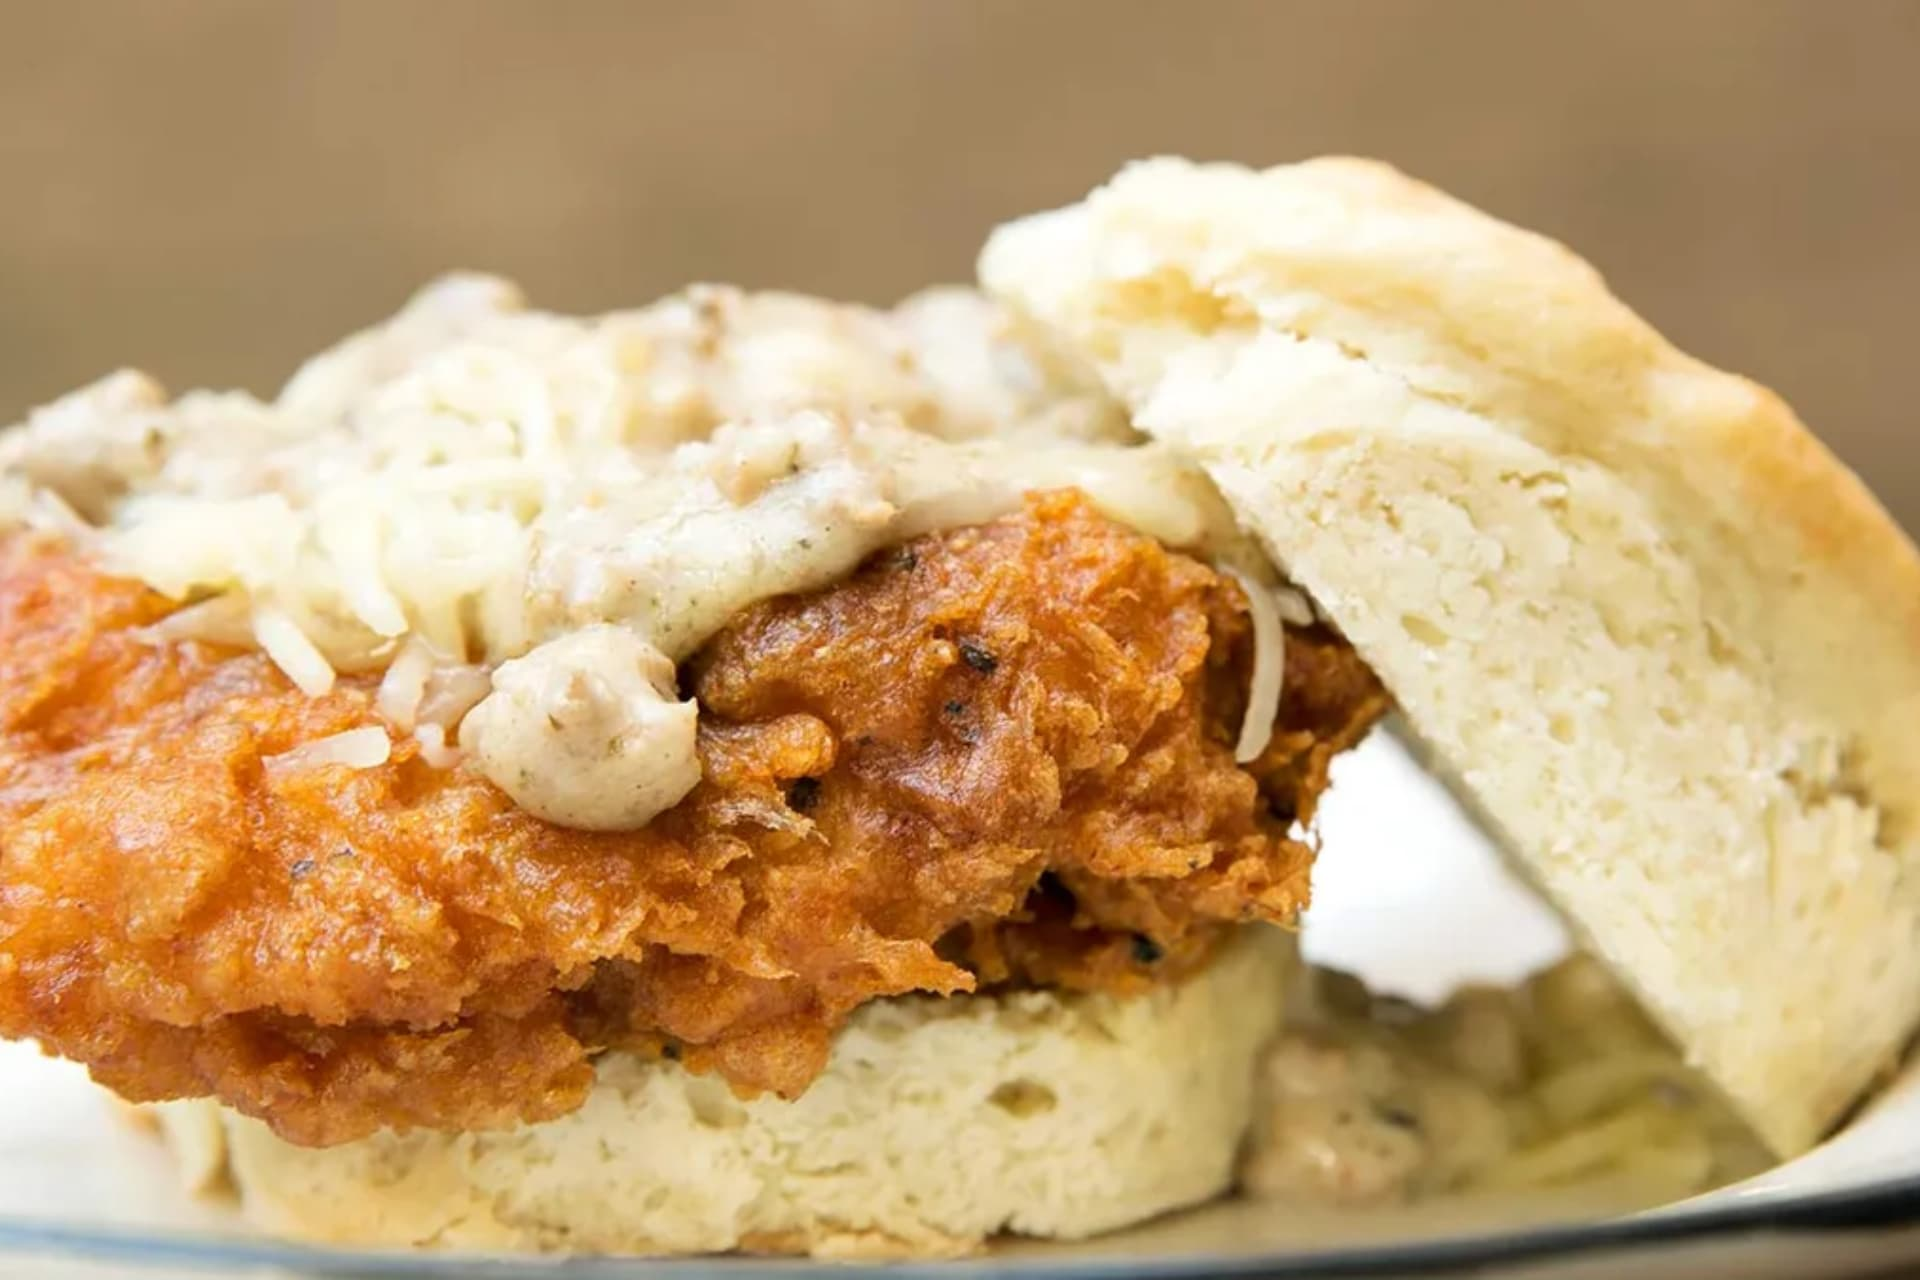 Find Nashville's Best Biscuits at These 8 Eateries